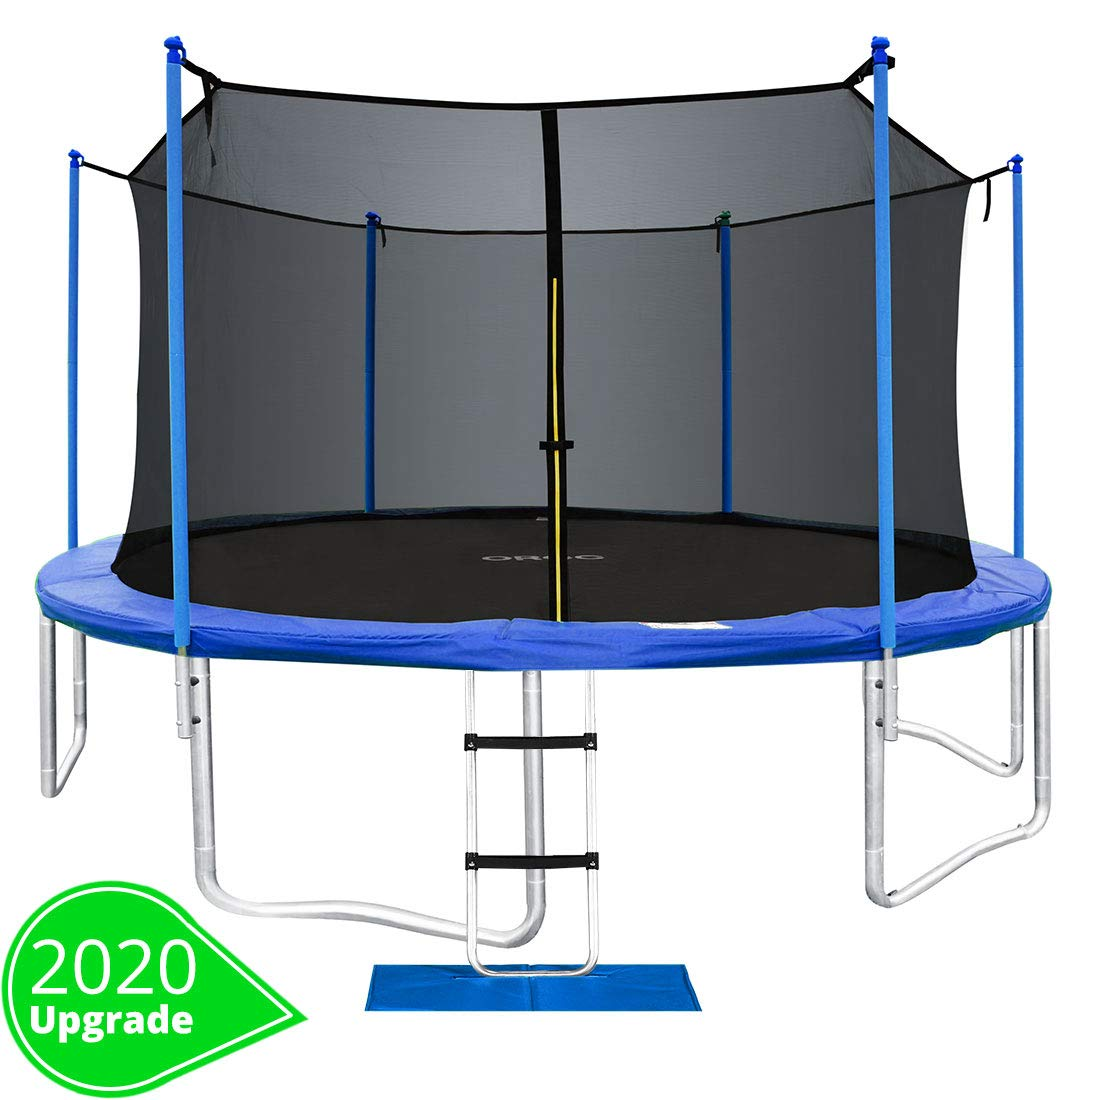 Springs Trampoline Enclosure Stakes Included